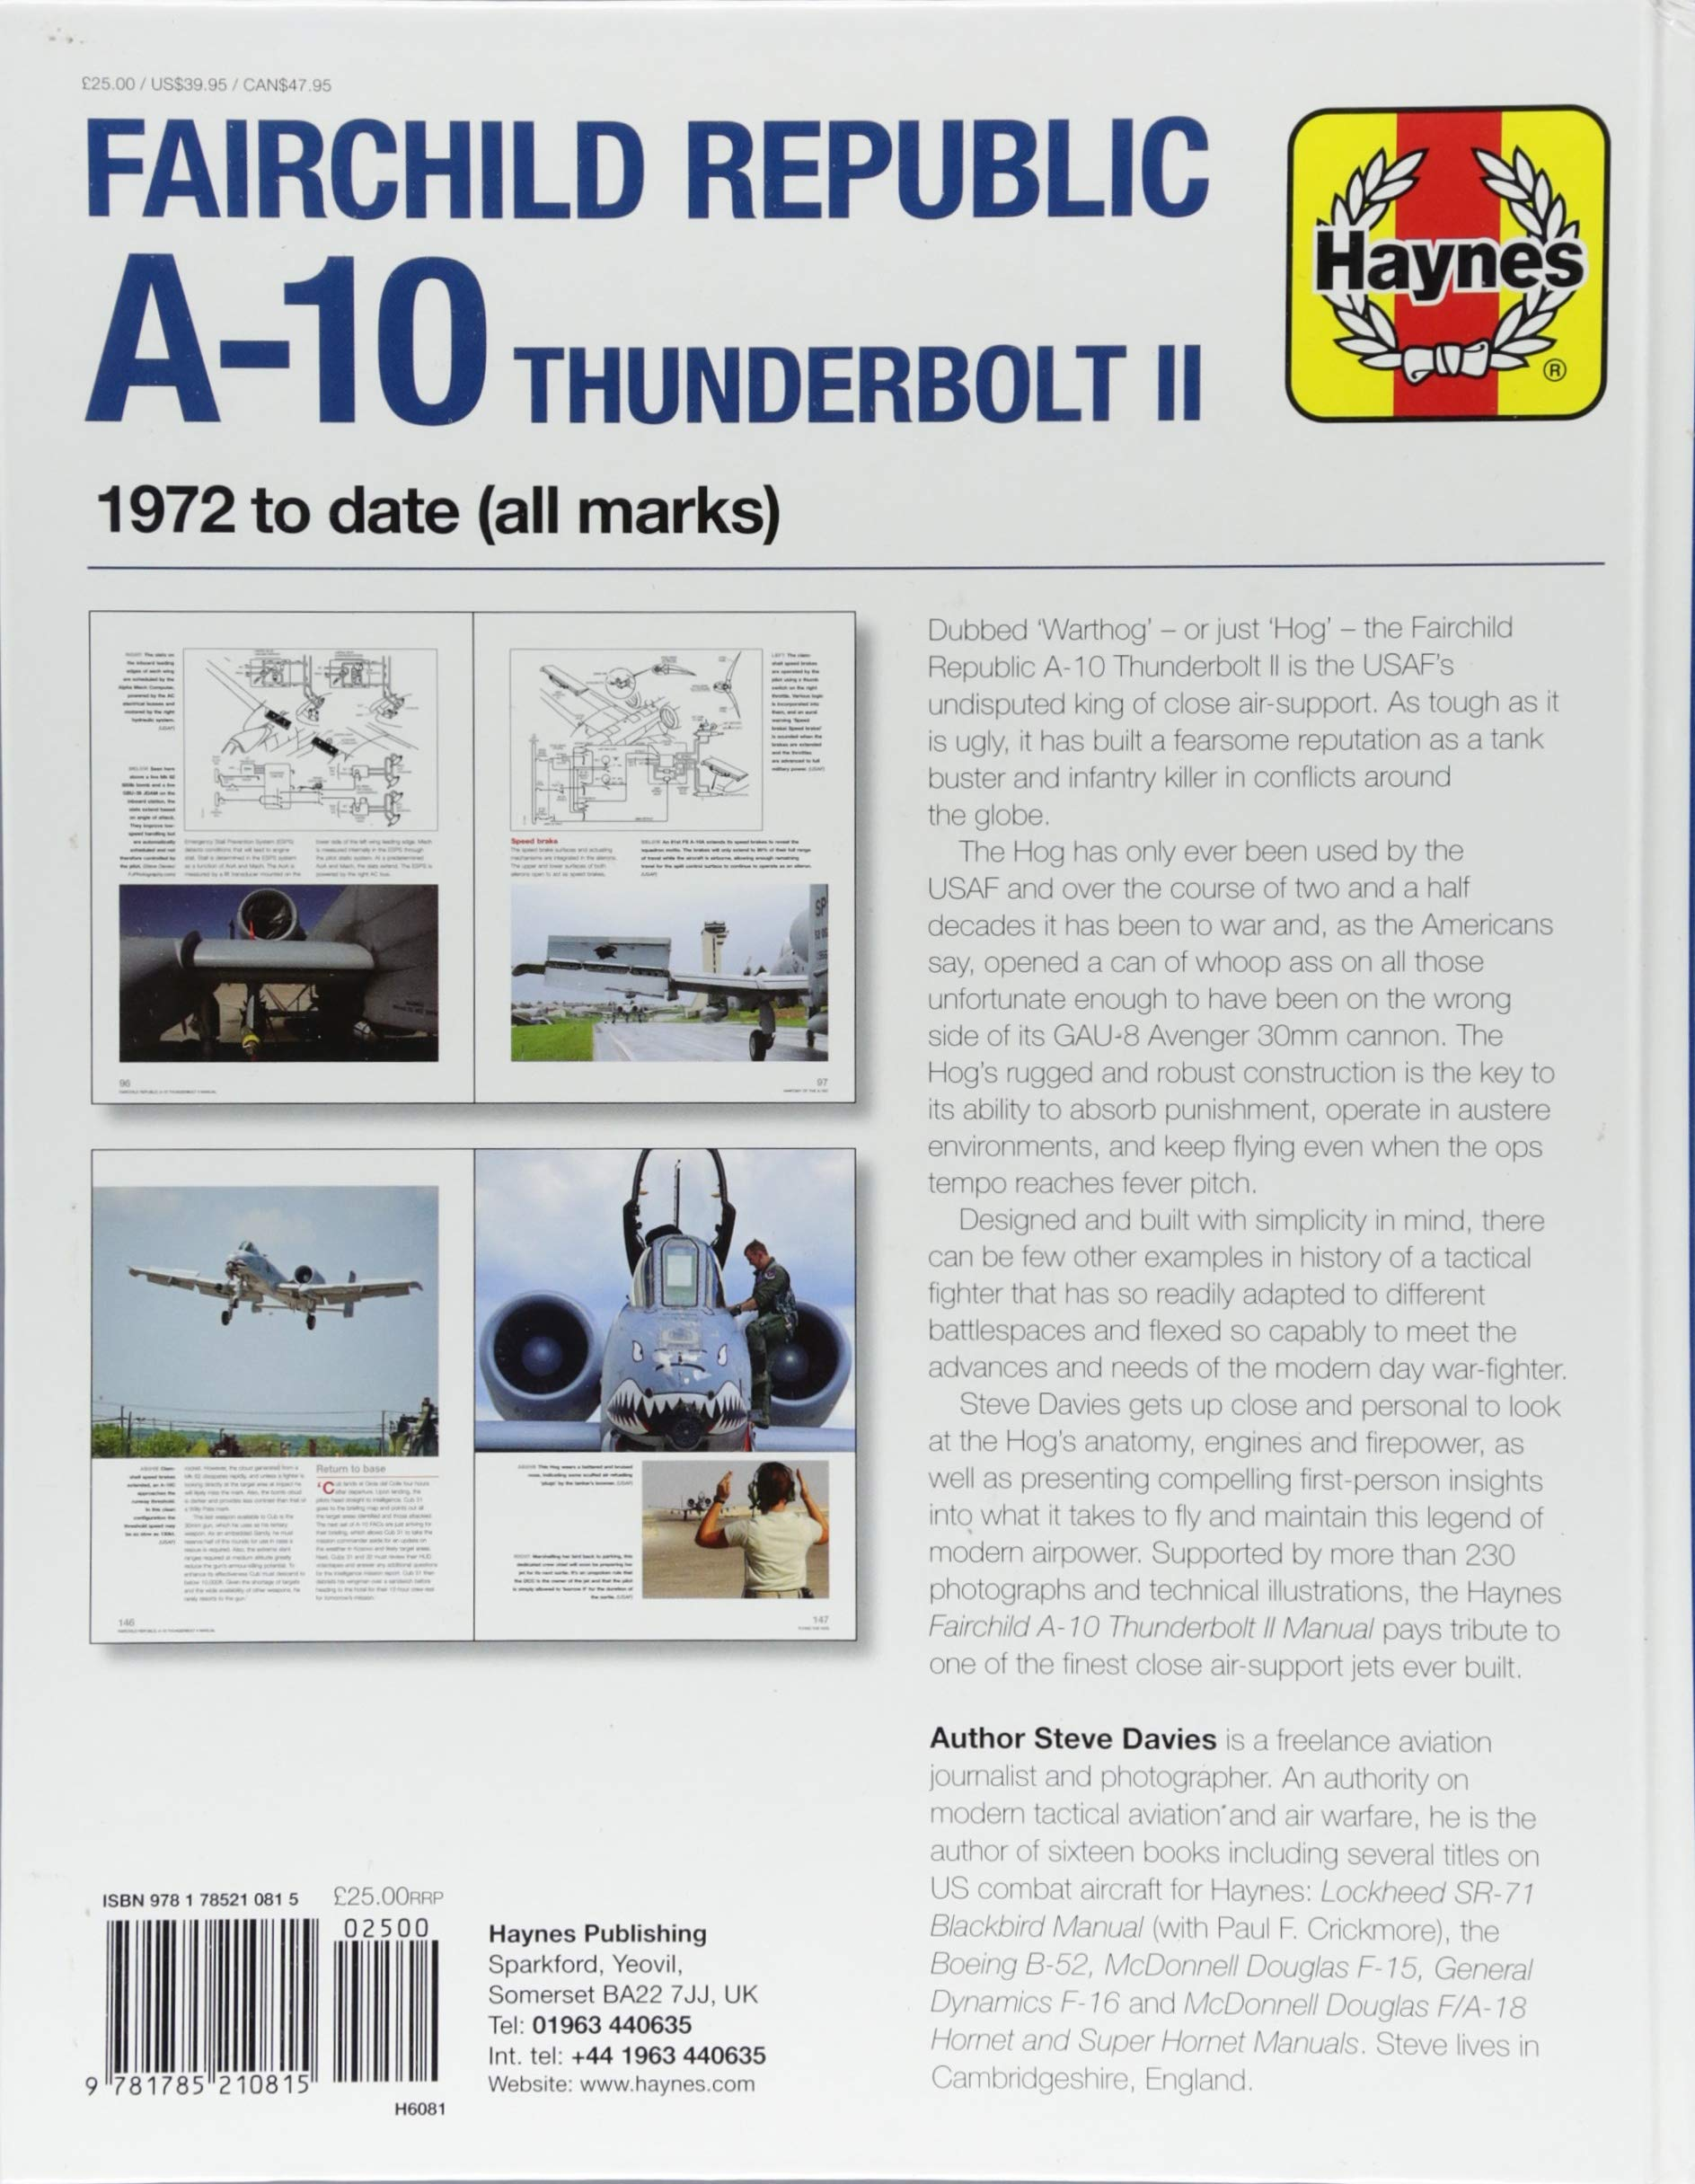 Fairchild Republic A-10 Thunderbolt II: 1972 to date (all marks) (Owners'  Workshop Manual): Steve Davies: 9781785210815: Amazon.com: Books